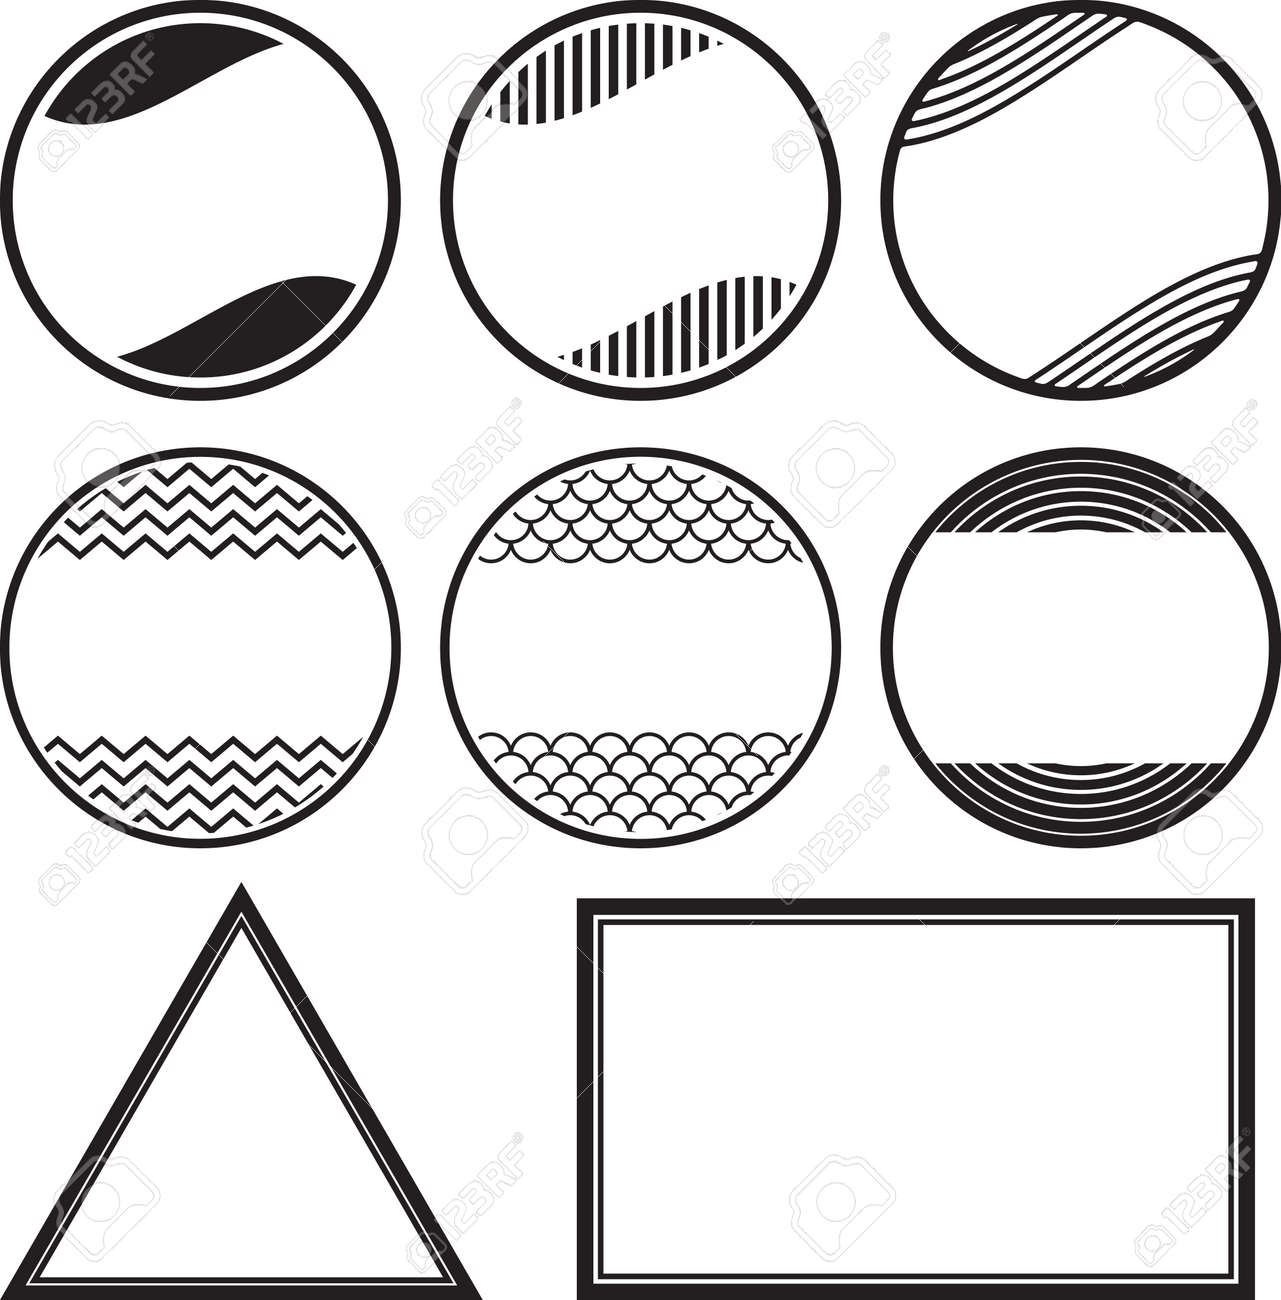 set of 8 solid style rubber stamps templates royalty free cliparts